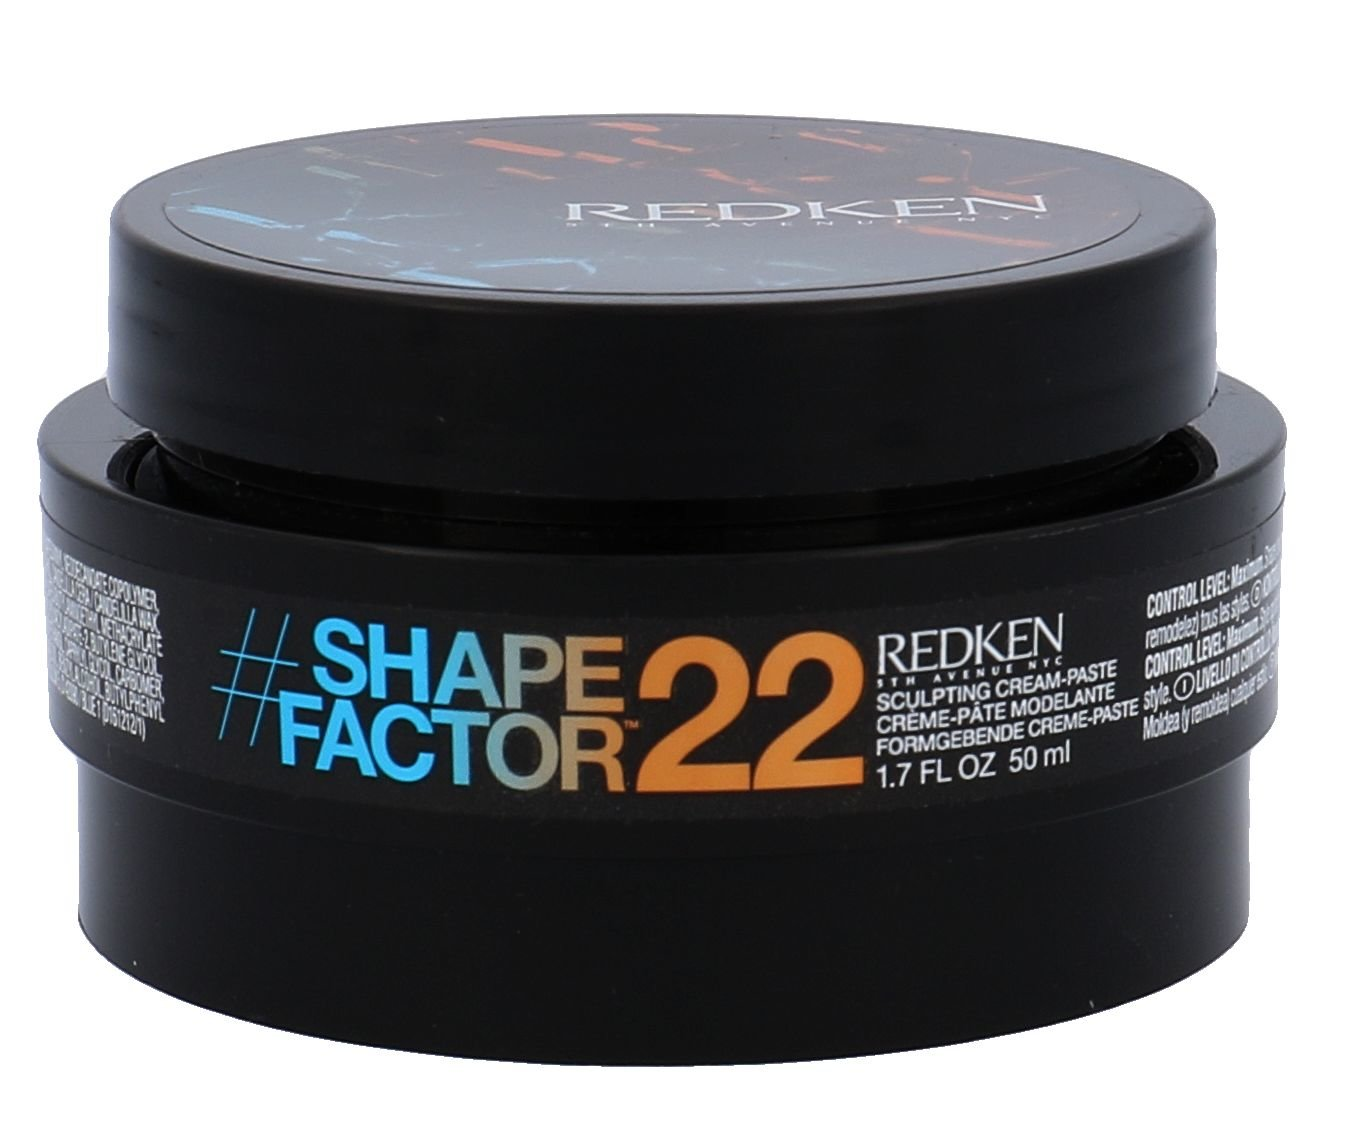 Redken Shape Factor 22 Sculpting Cream-Paste Cosmetic 50ml